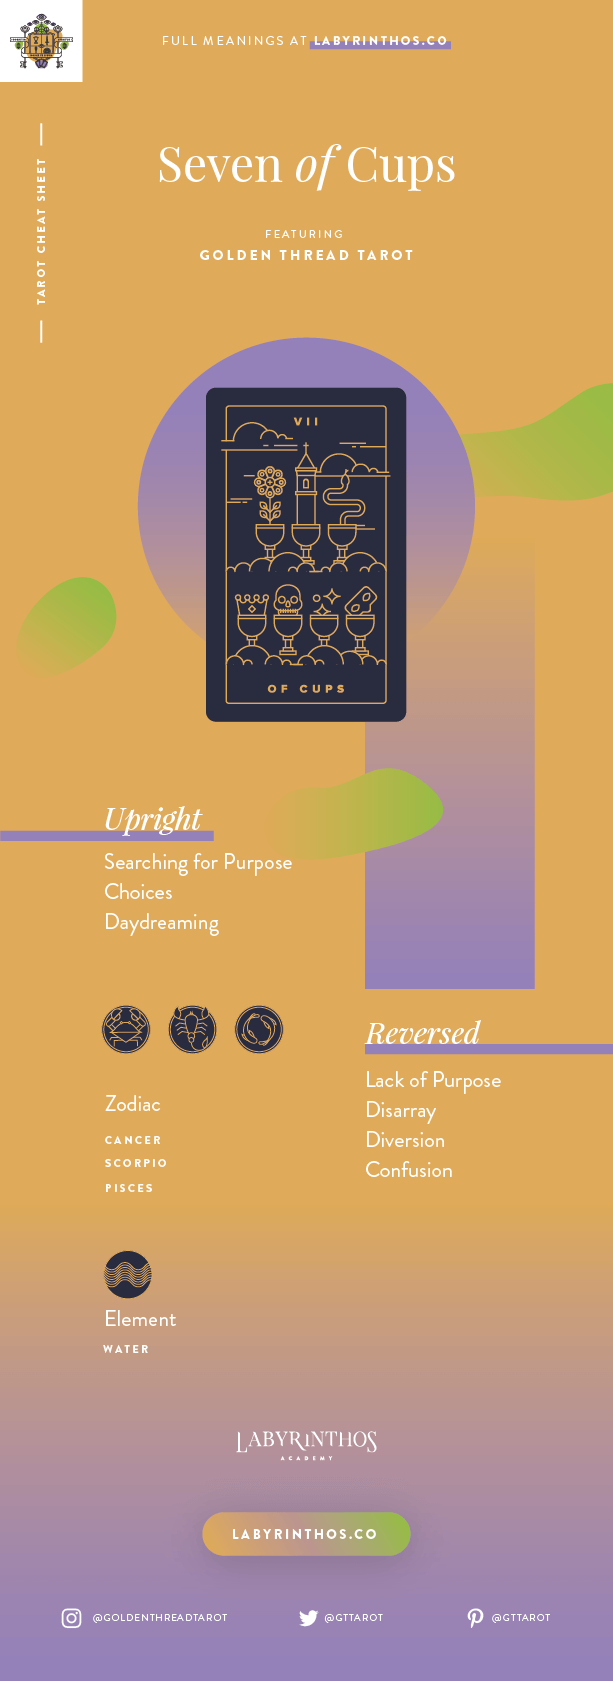 Seven of Cups Meaning - Tarot Card Meanings Cheat Sheet. Art from Golden Thread Tarot.